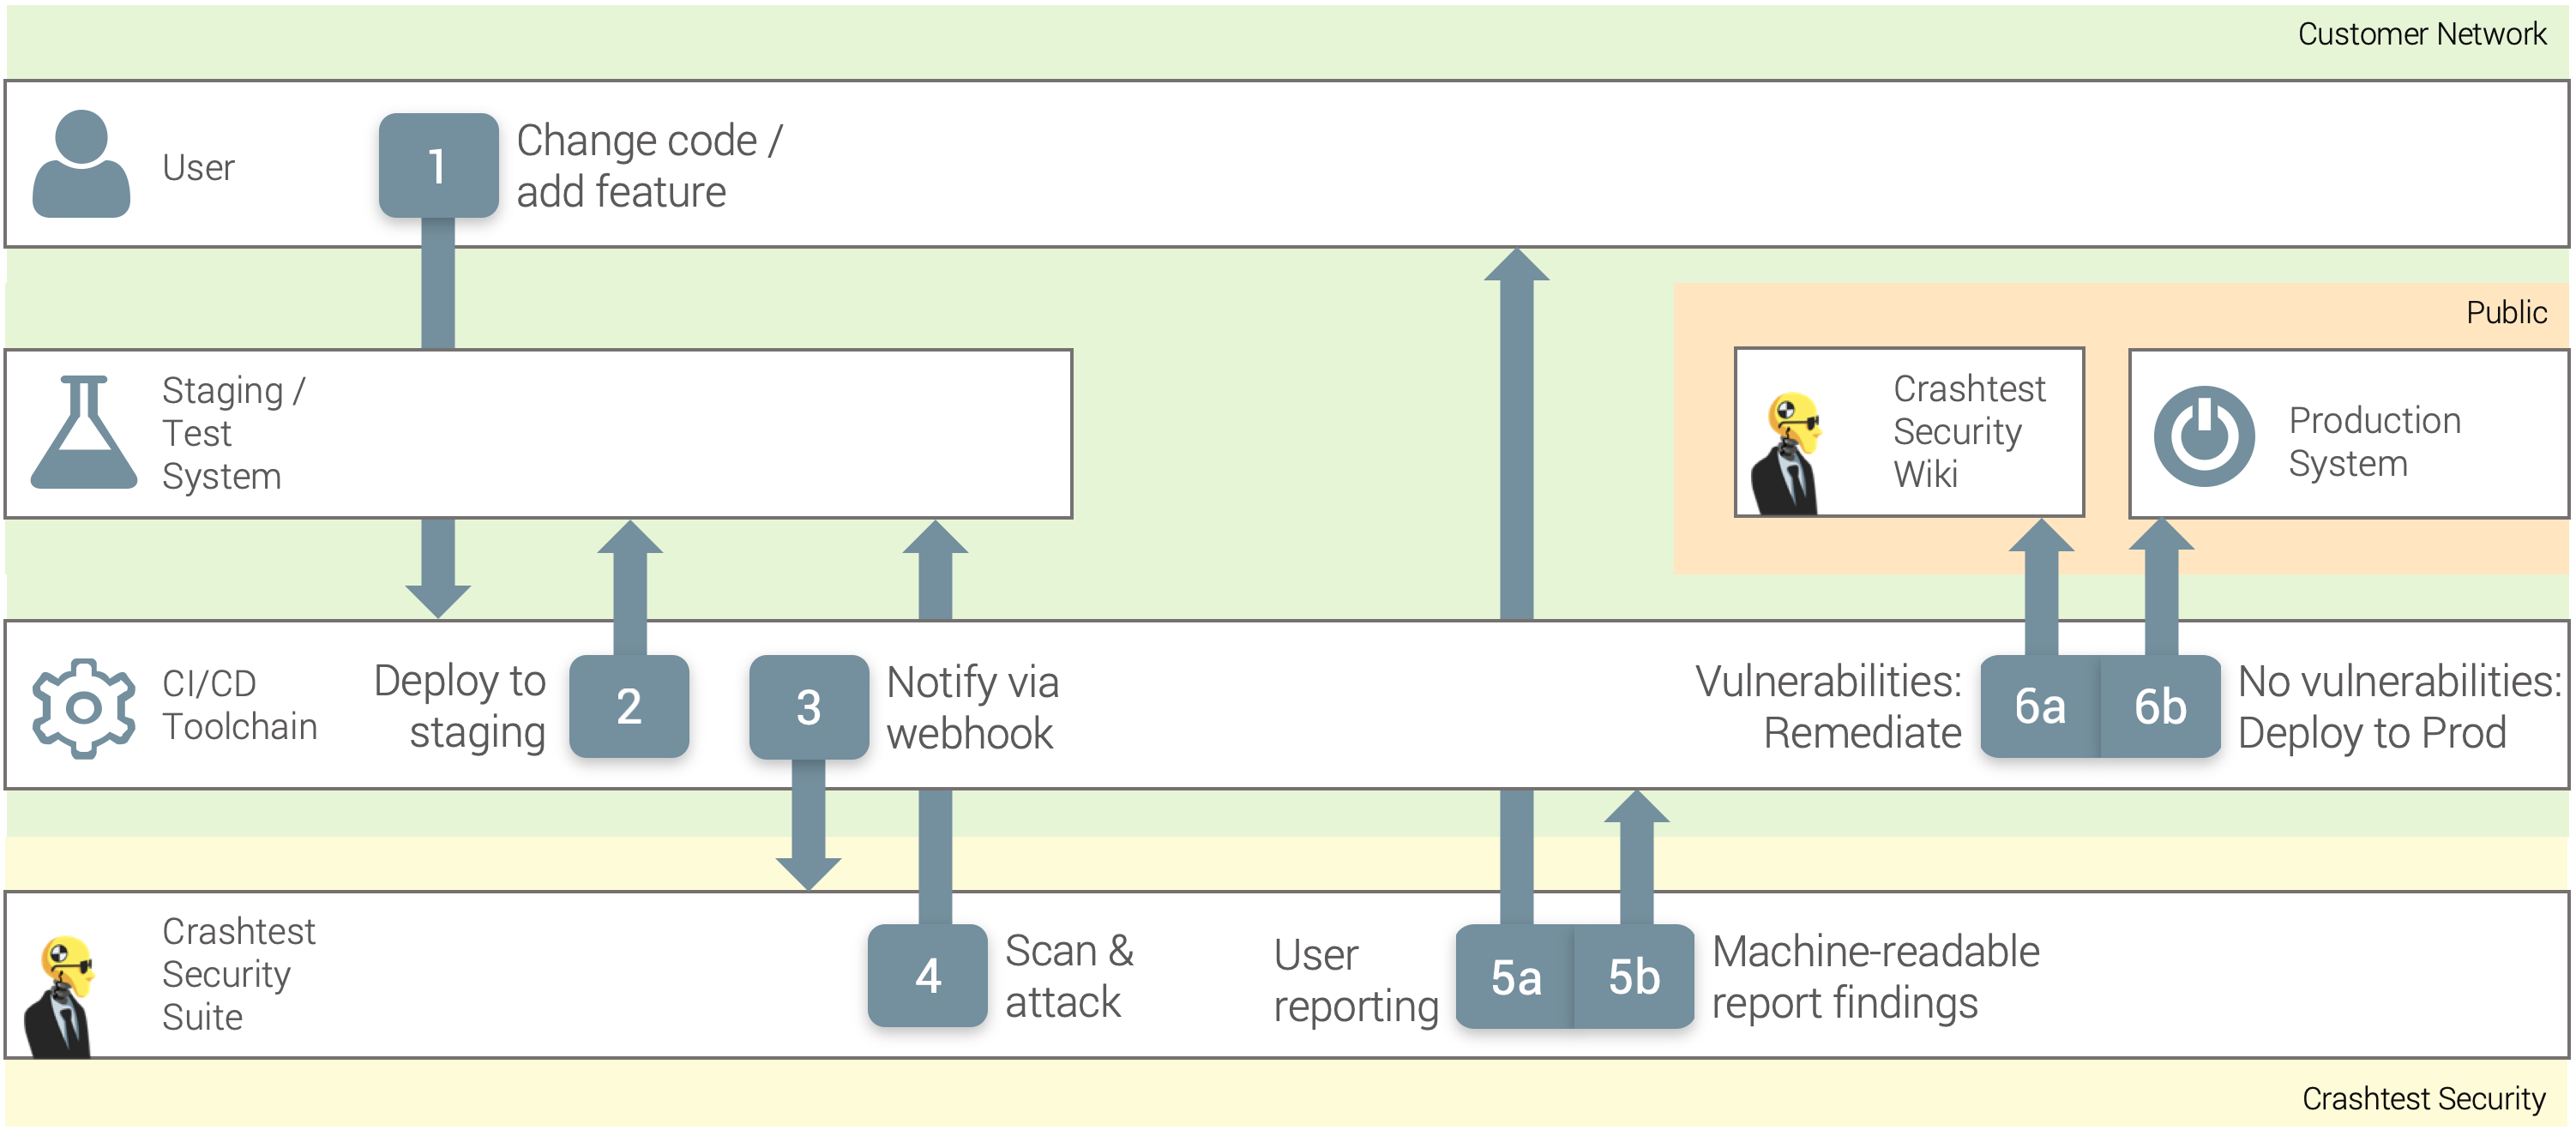 CI / CD Integration of the Crashtest Security Suite